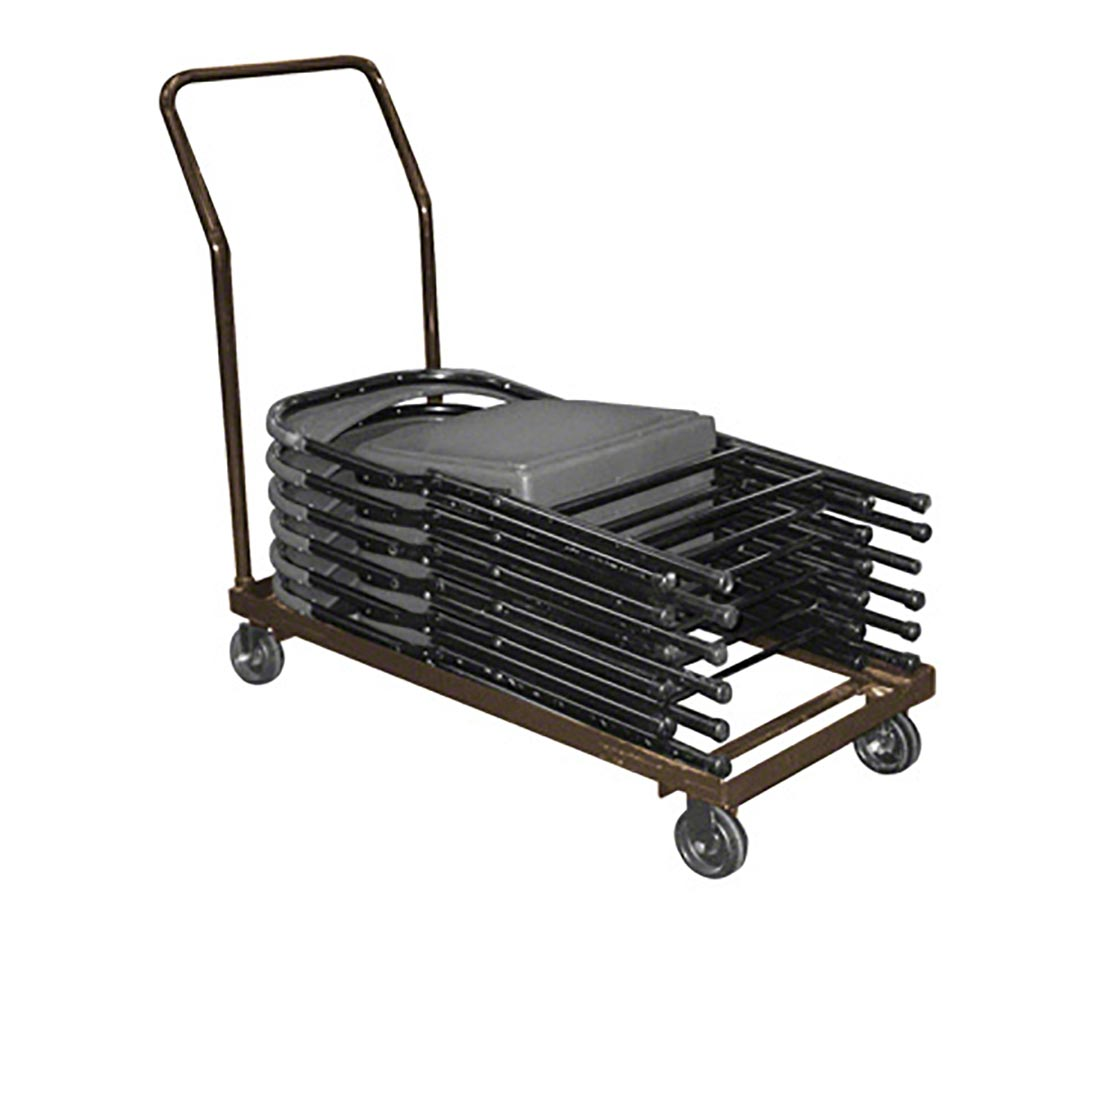 folding chair dolly 50 capacity bloom high transport stagedrop com 1 800 88 stage national public seating series trolley storage